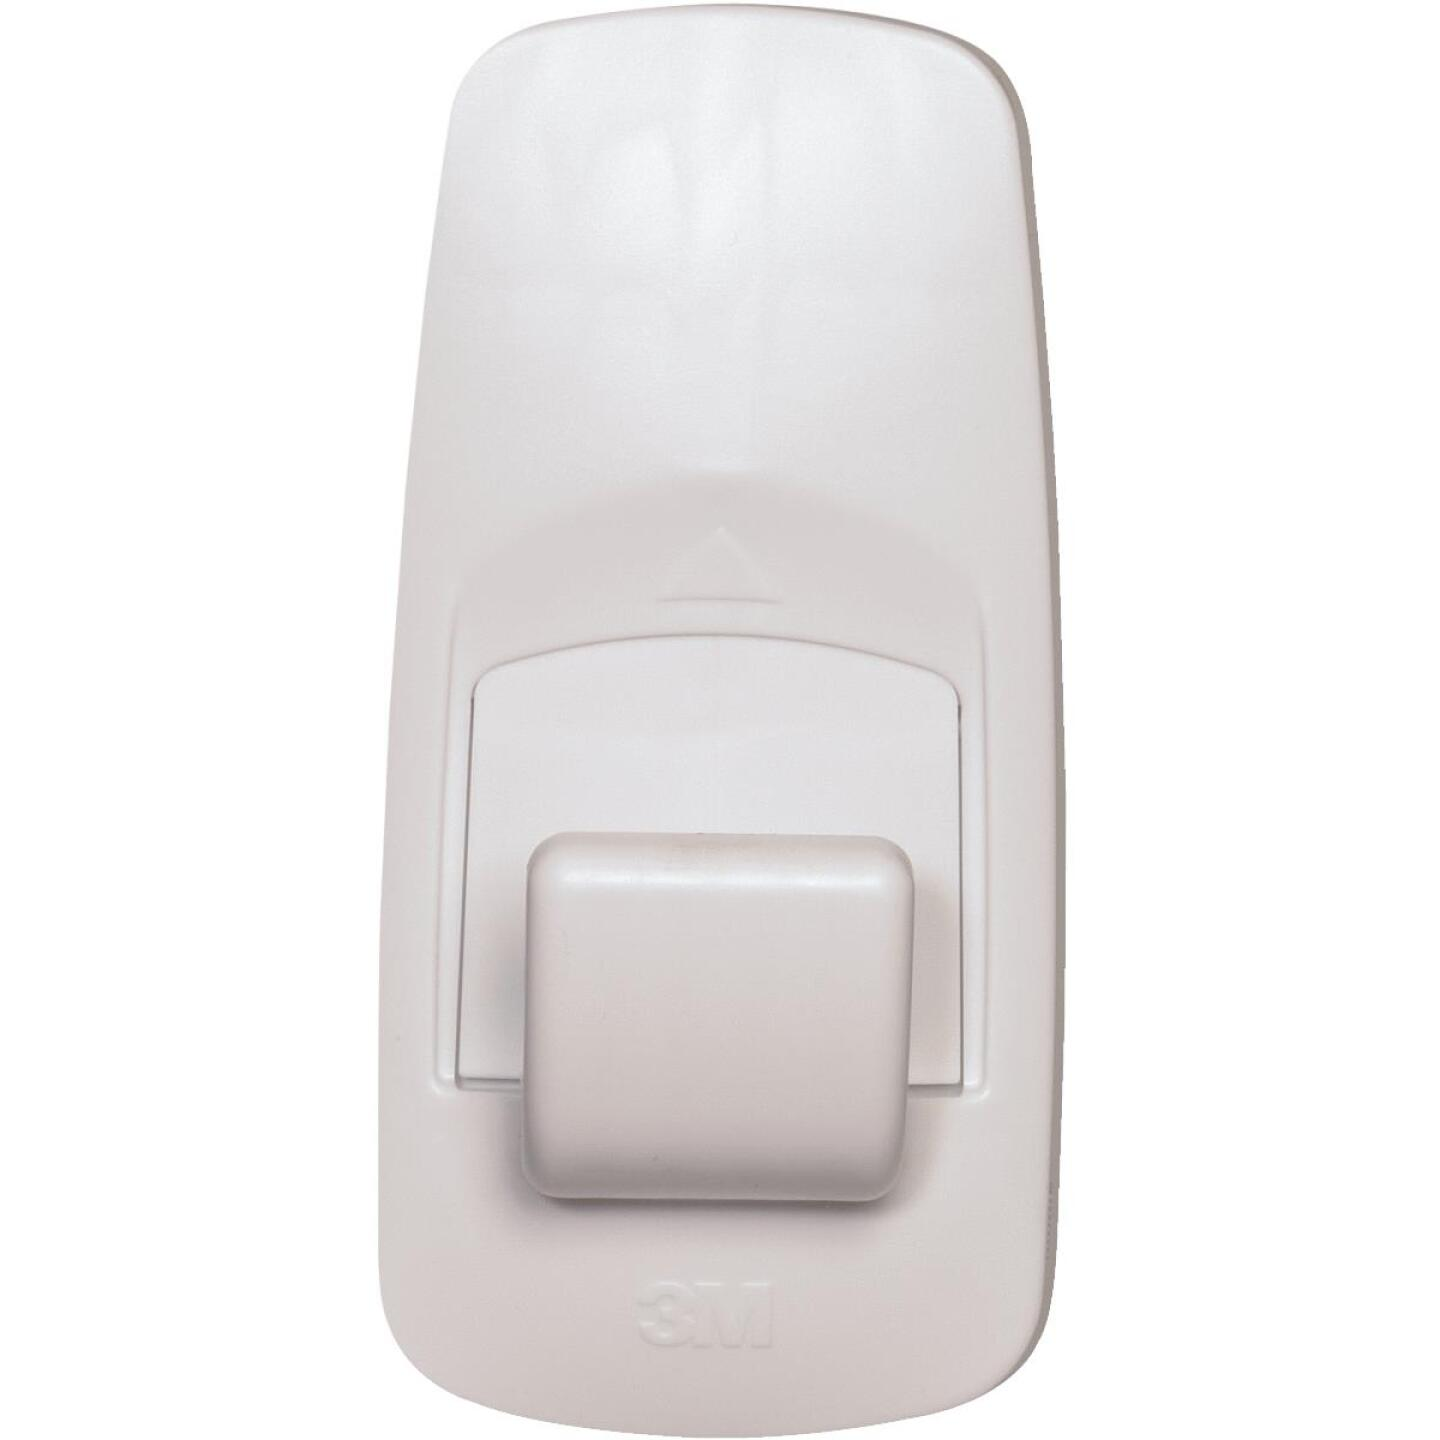 Command 2 In. x 4-1/4 In. Jumbo Adhesive Hook Image 2